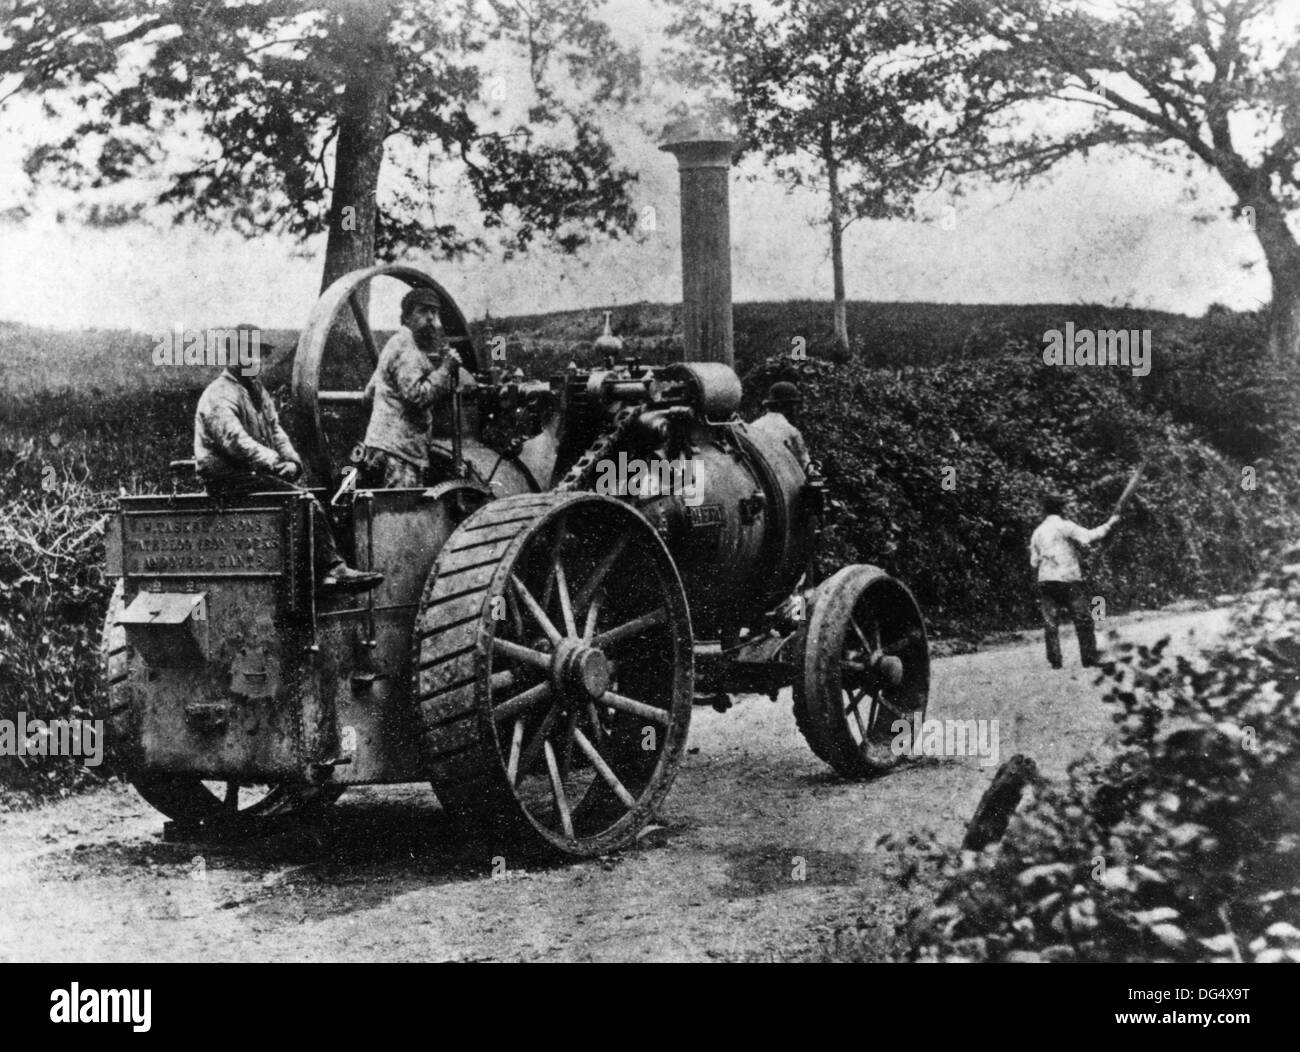 1869 Tasker traction engine en route from Andover to an agricultural show in Southampton. - Stock Image